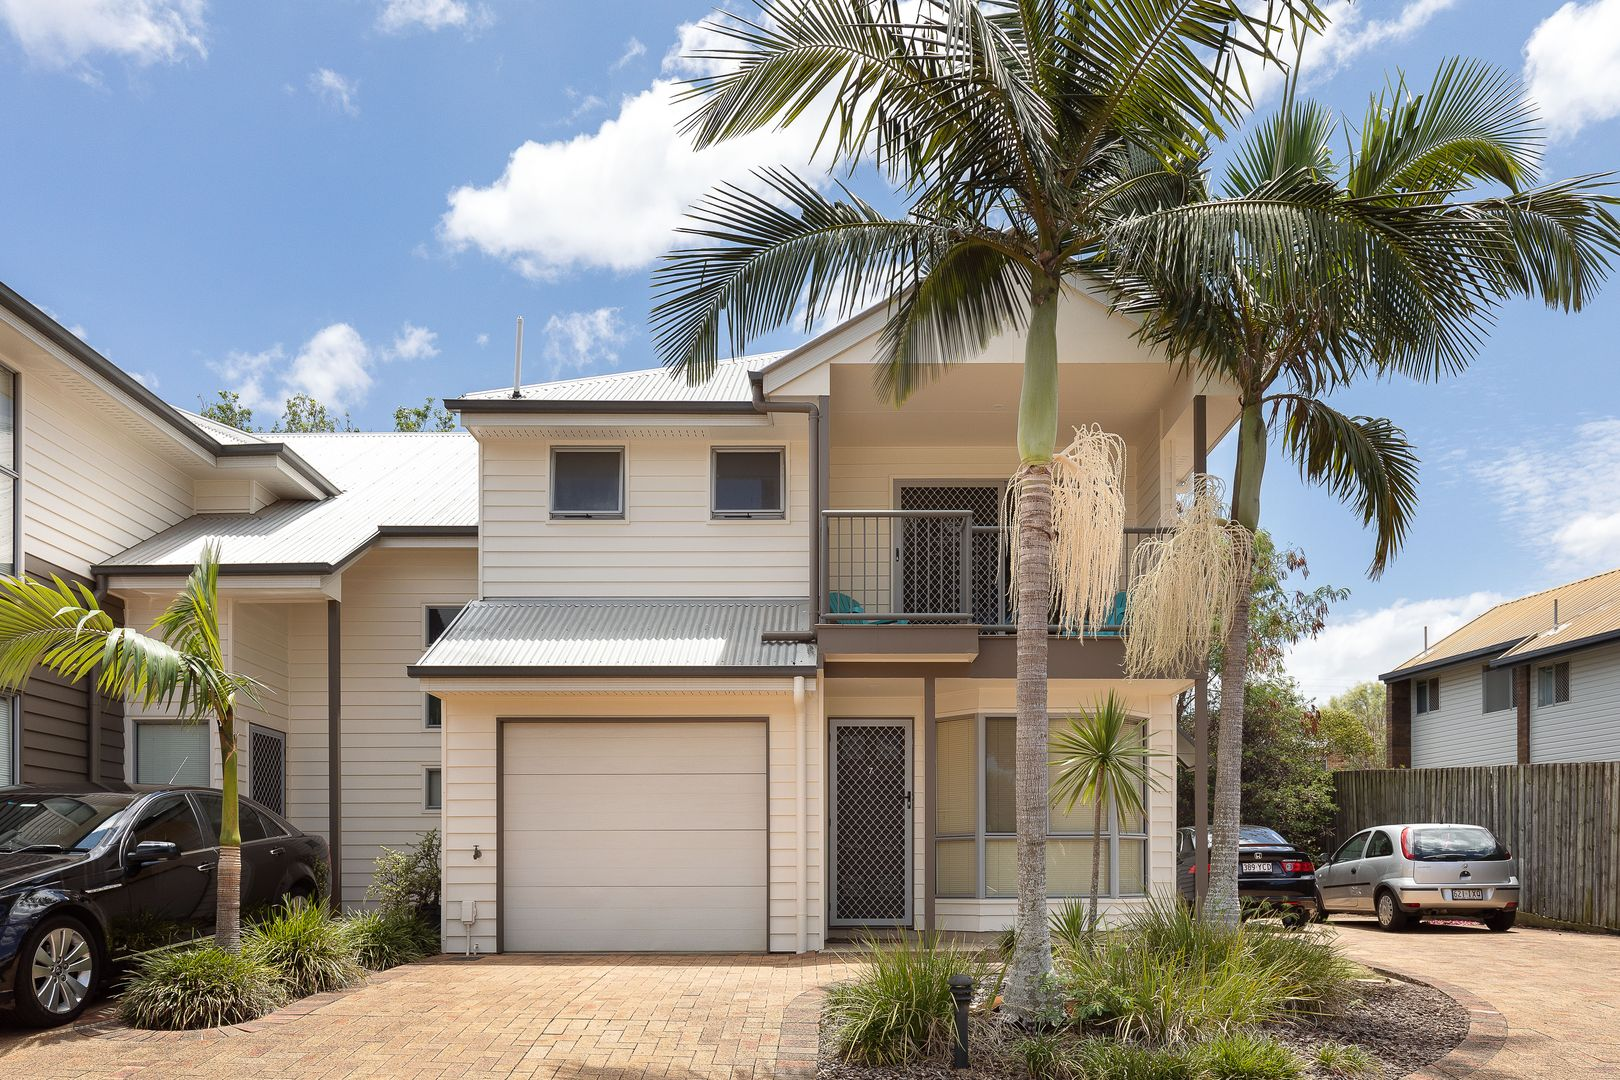 8/12 Elwell Street, Morningside QLD 4170, Image 0